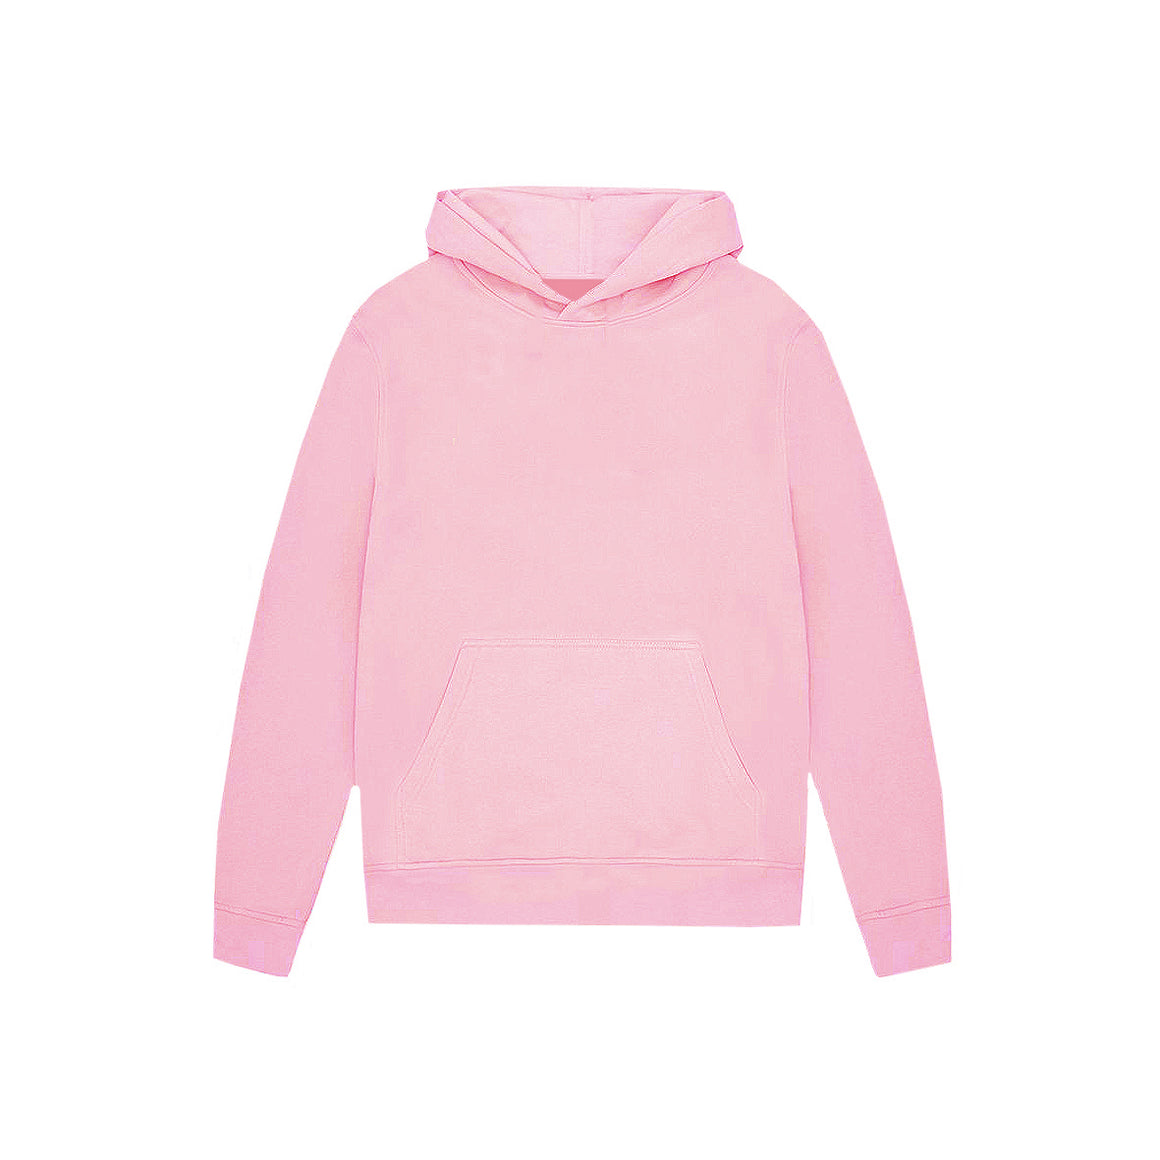 UNBRANDED ESSENTIAL PULLOVER HOODY | BABY PINK